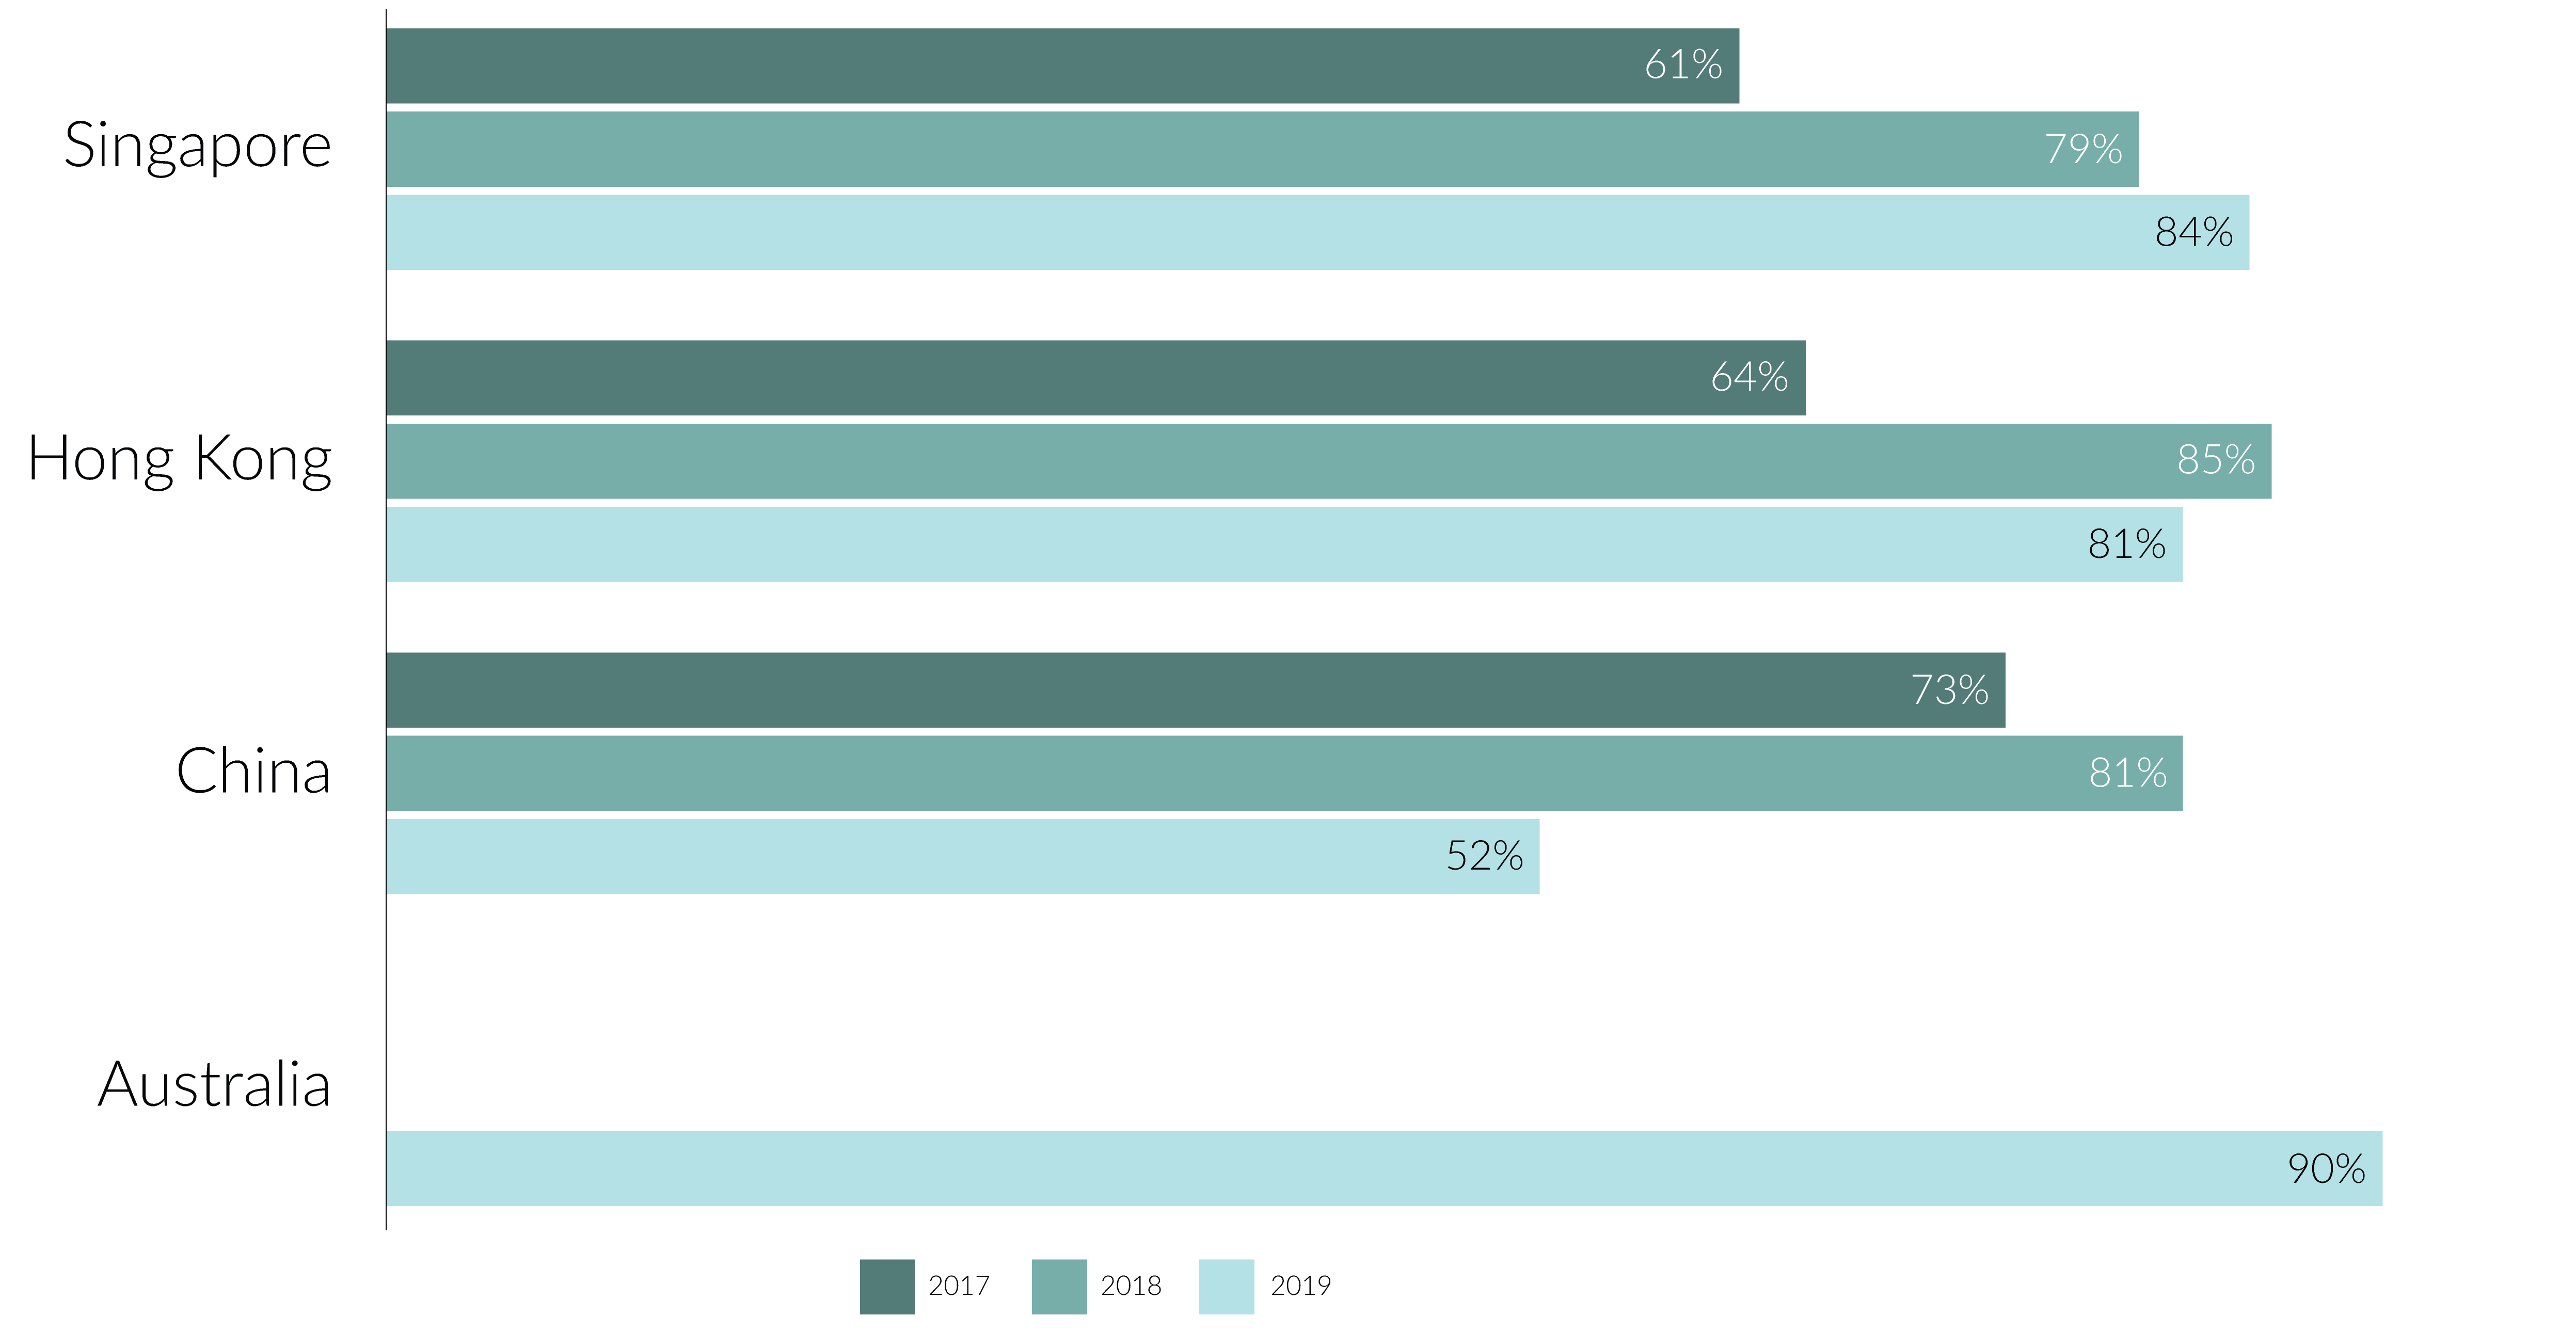 Infographic 1: Percentage of respondents who indicated 'agree' that organisations are more accepting of difference